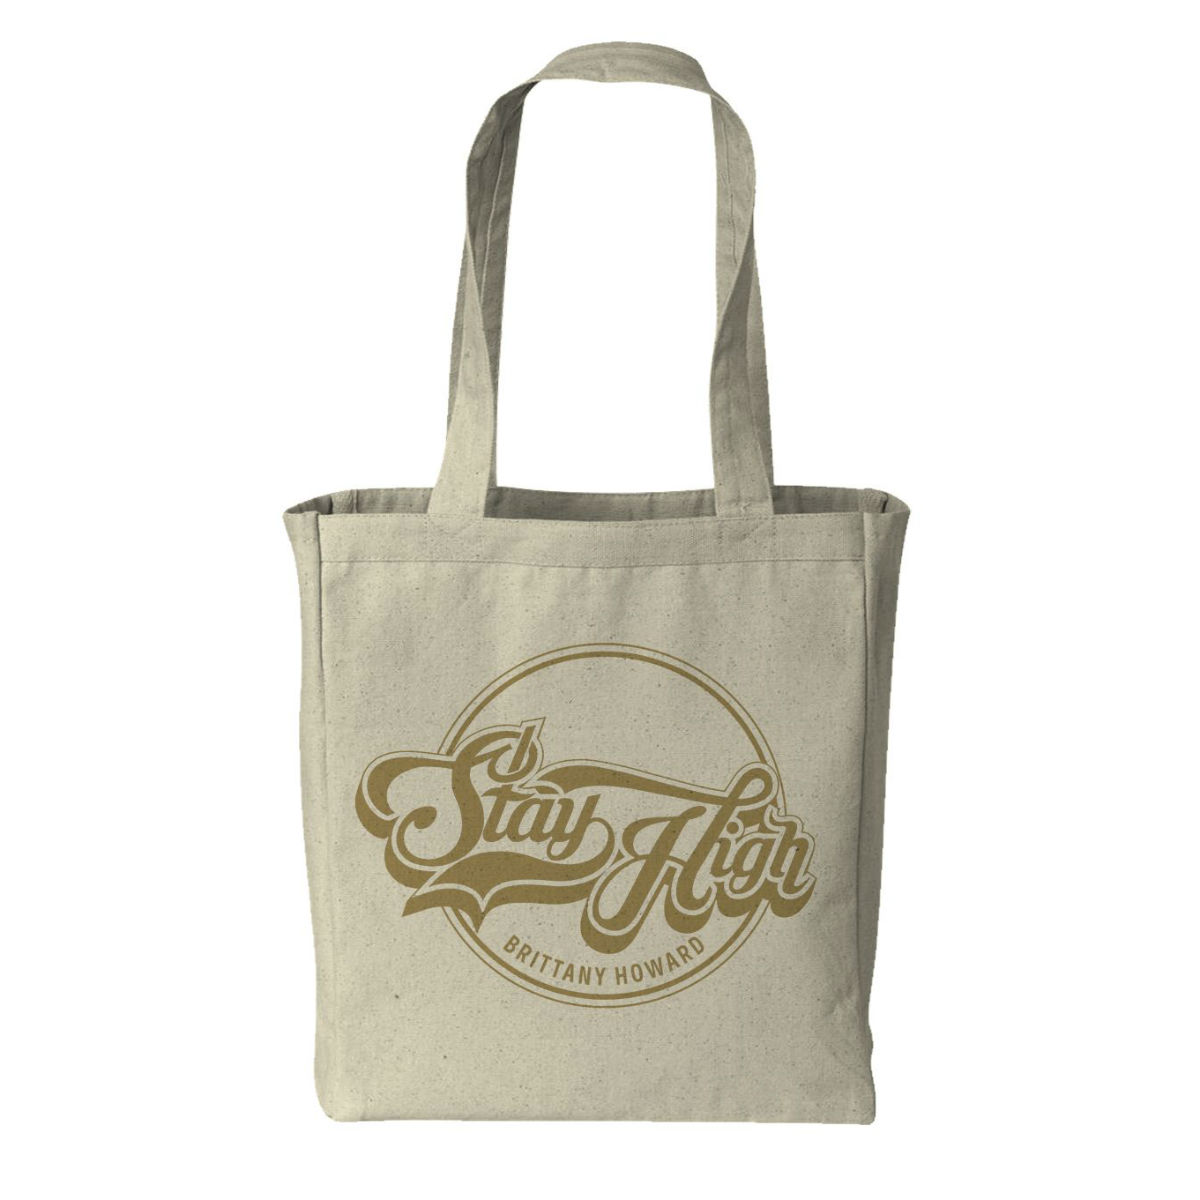 Stay High Tote Bag